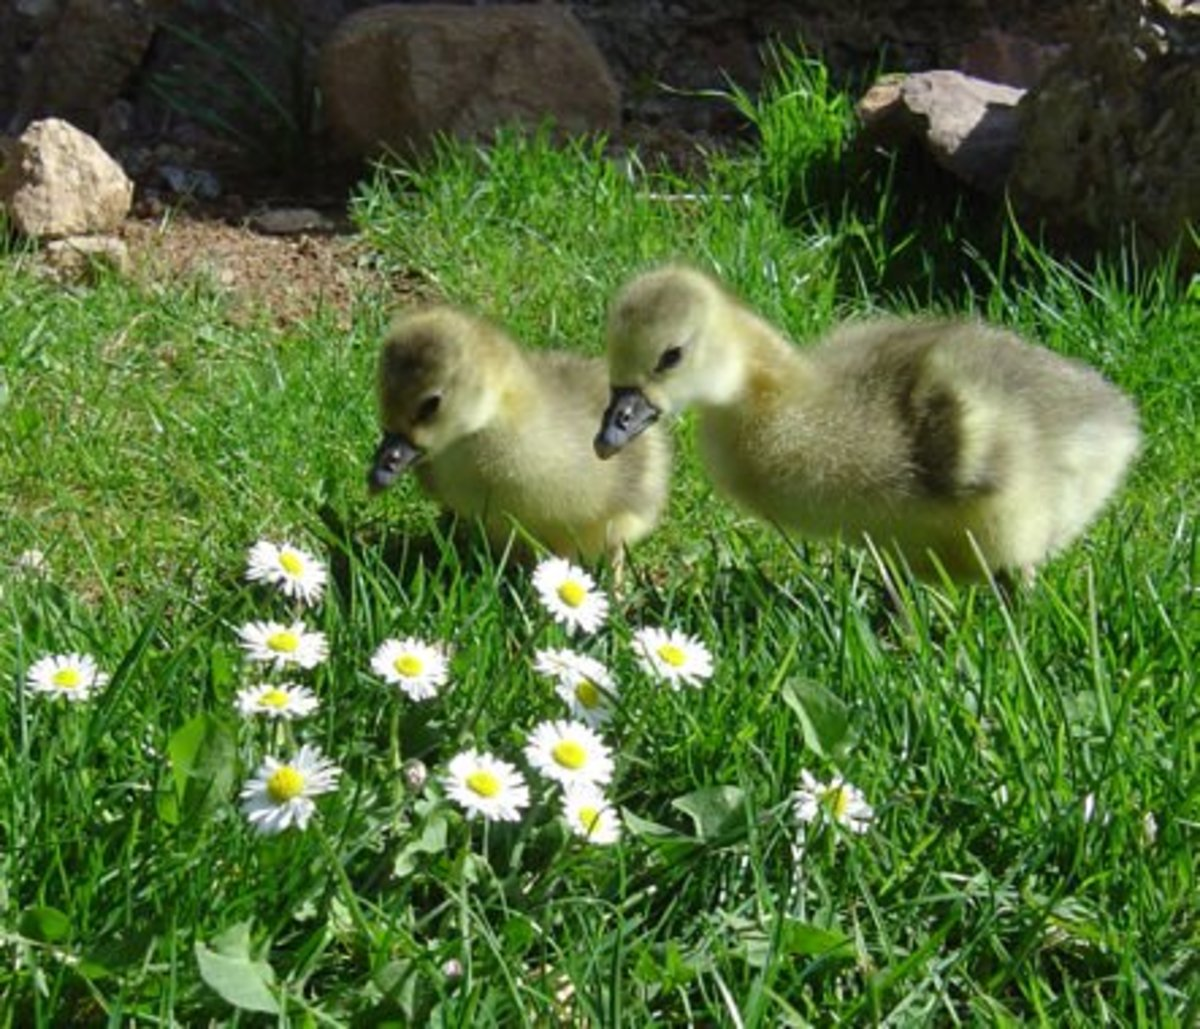 Goslings are so cute.